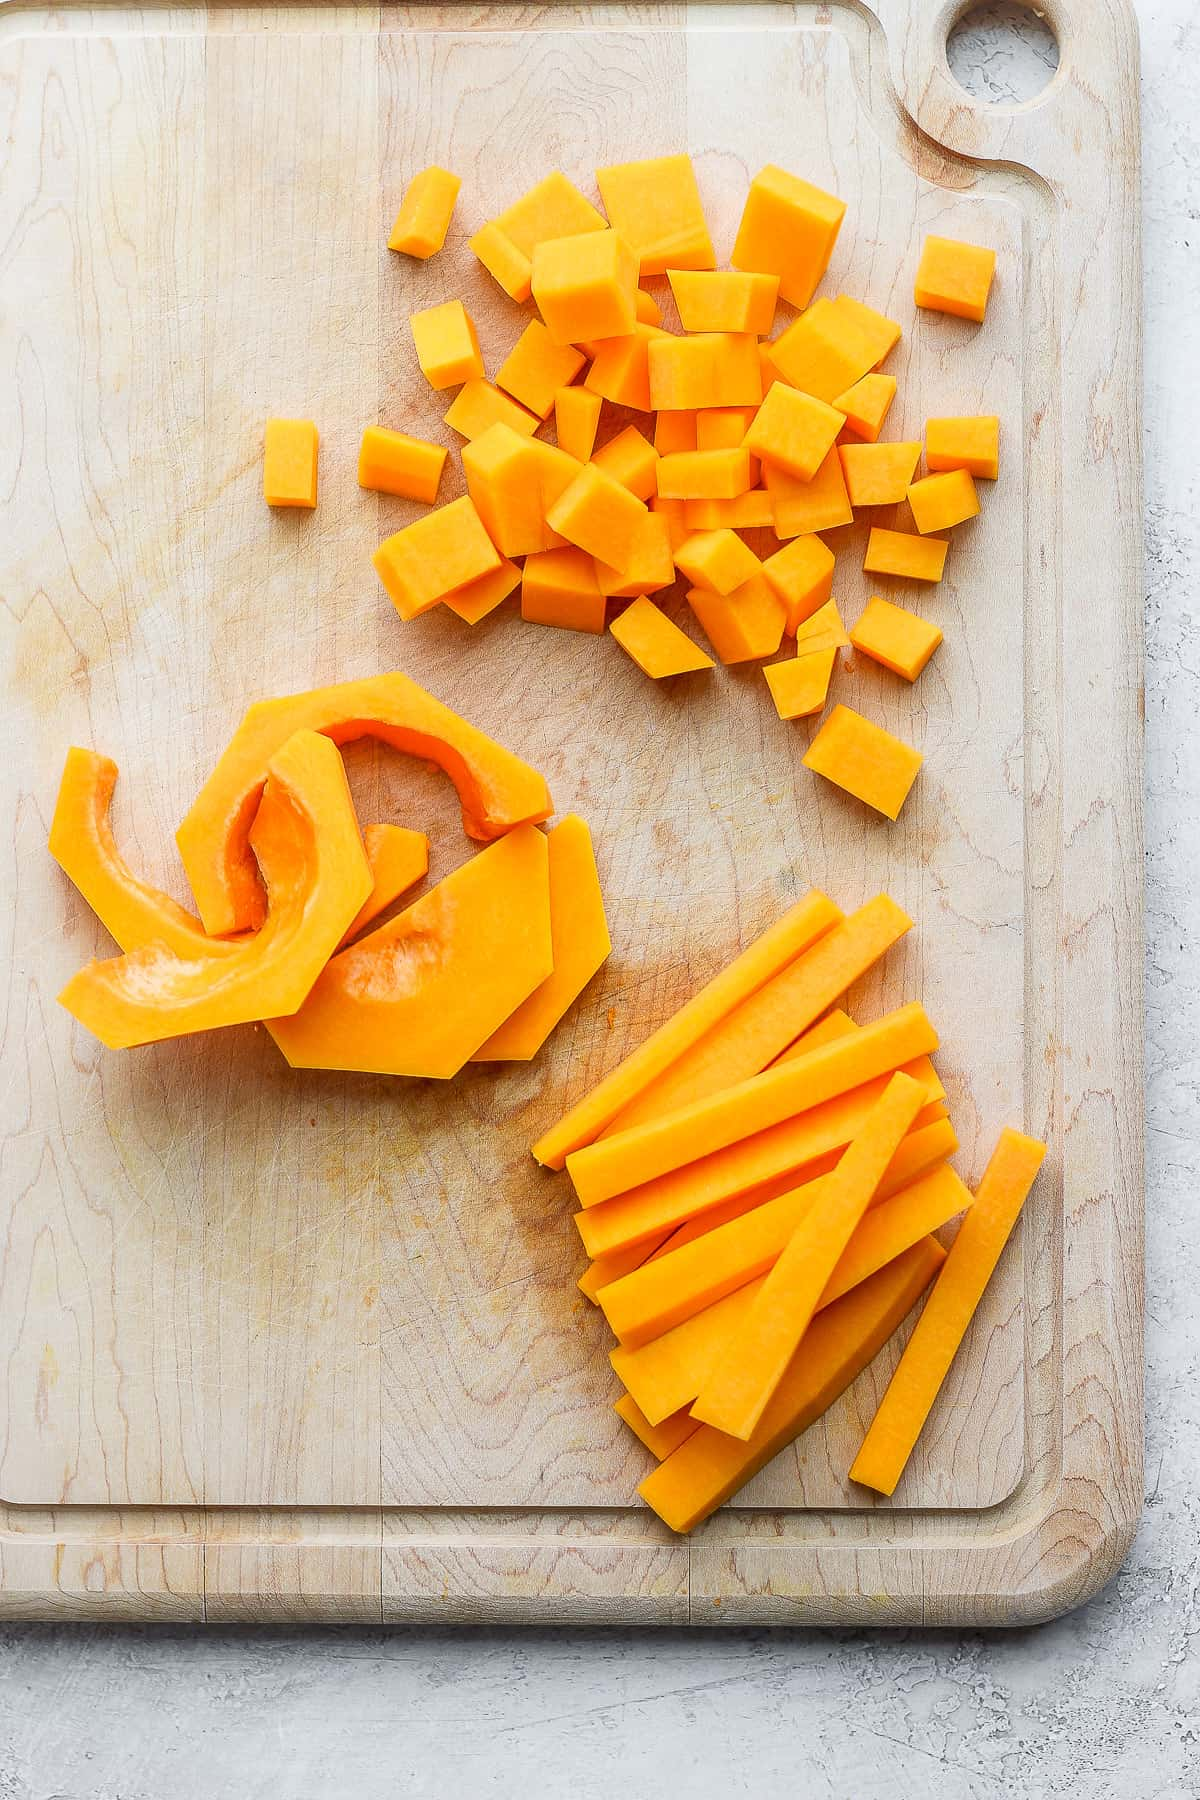 3 types of ways to cut butternut squash shown on a cutting board